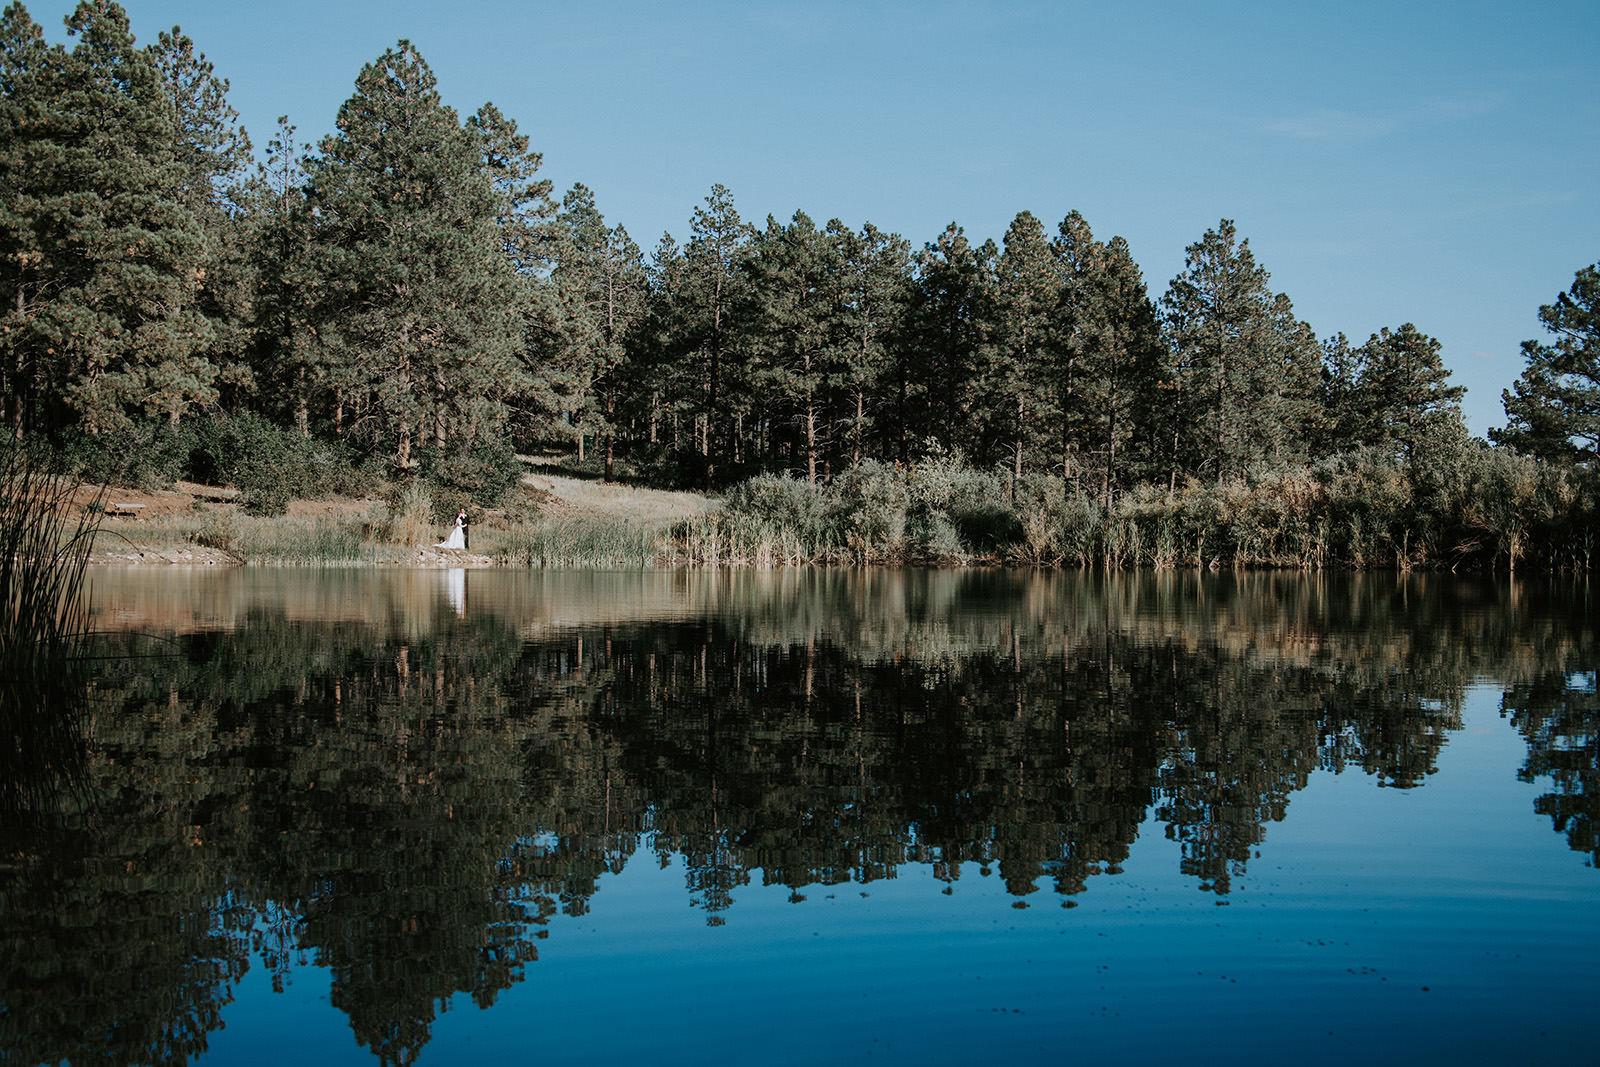 Wide angle of bride and groom next to lake with pine trees